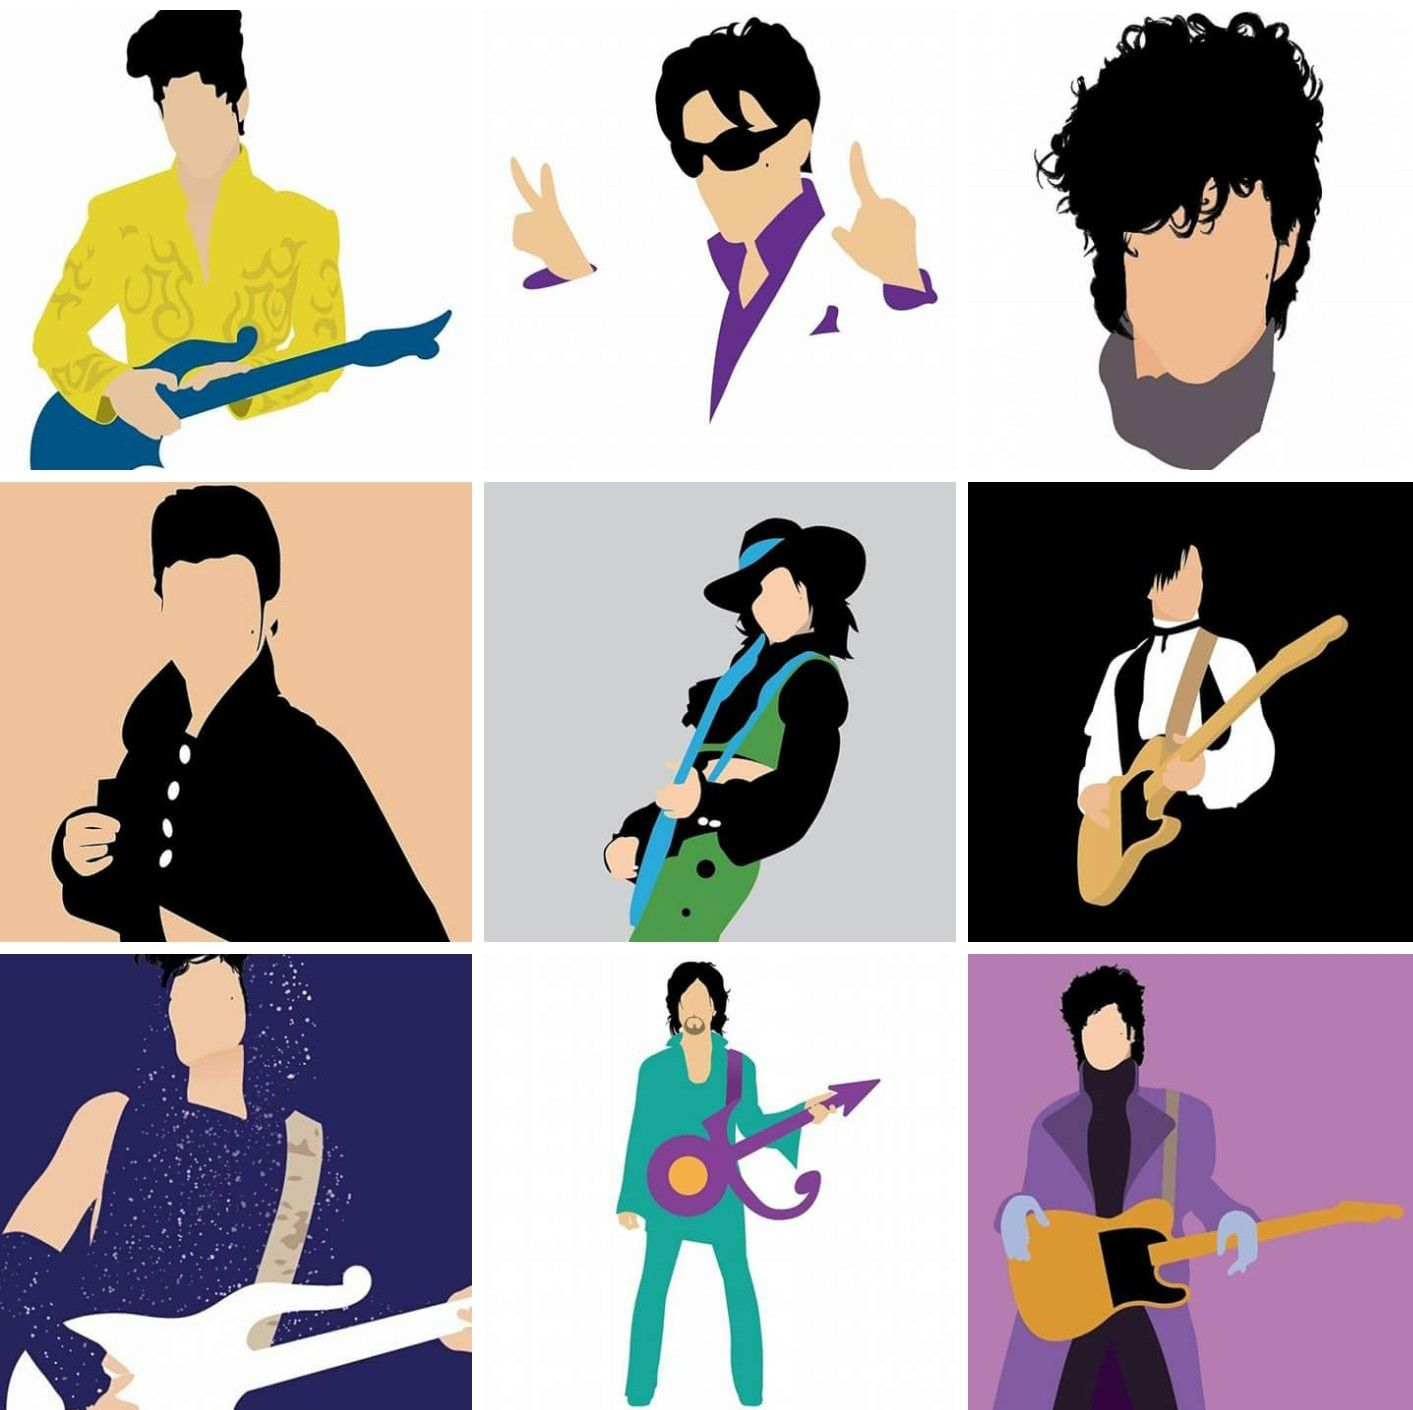 Prince and the revolution clipart png royalty free download Prince art | PRINCE 3121 | Prince, Prince rogers nelson ... png royalty free download